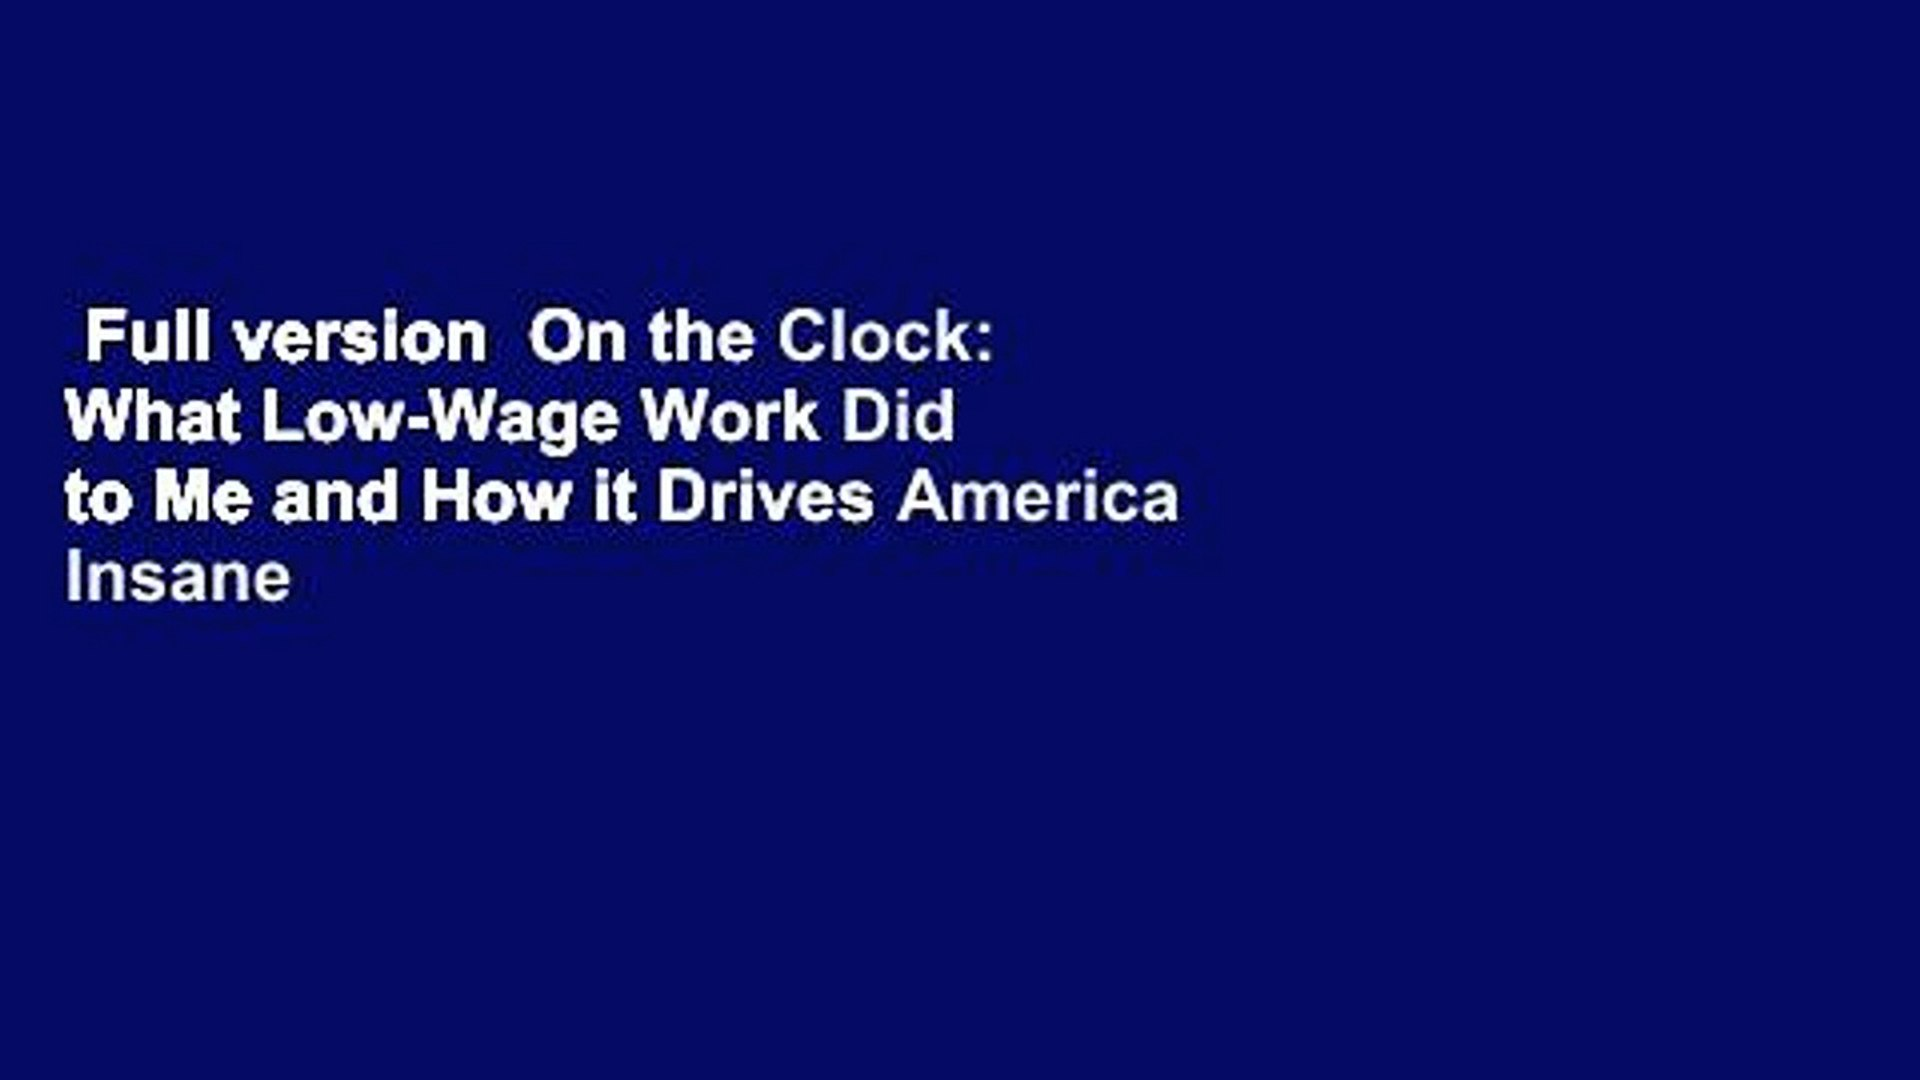 Full version  On the Clock: What Low-Wage Work Did to Me and How it Drives America Insane